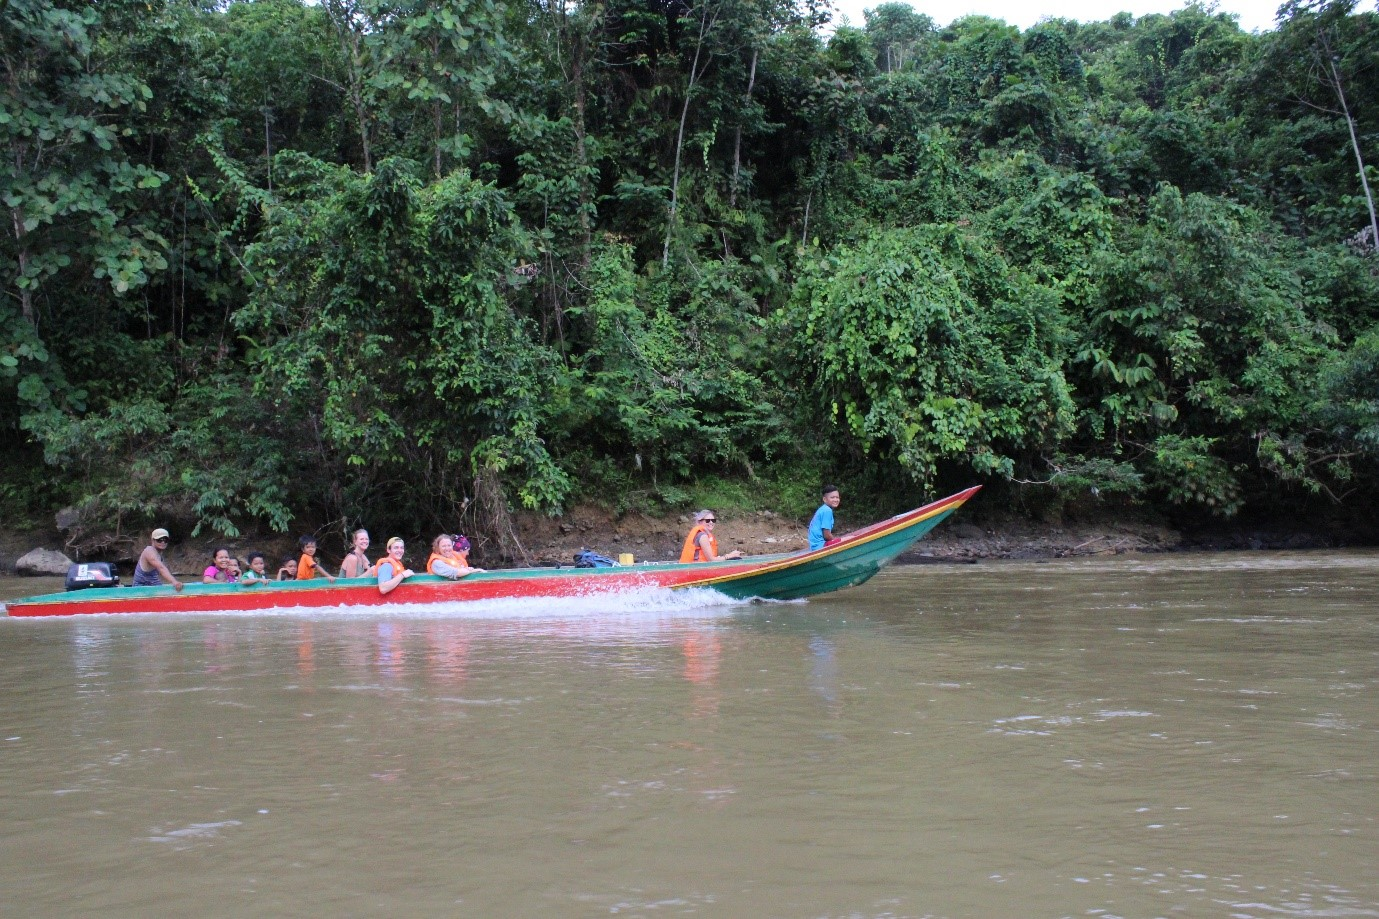 Travelling by boat to the village (kampung) of Sikalabaan, about two hours up-river from Kampung Salong, where the road ends.